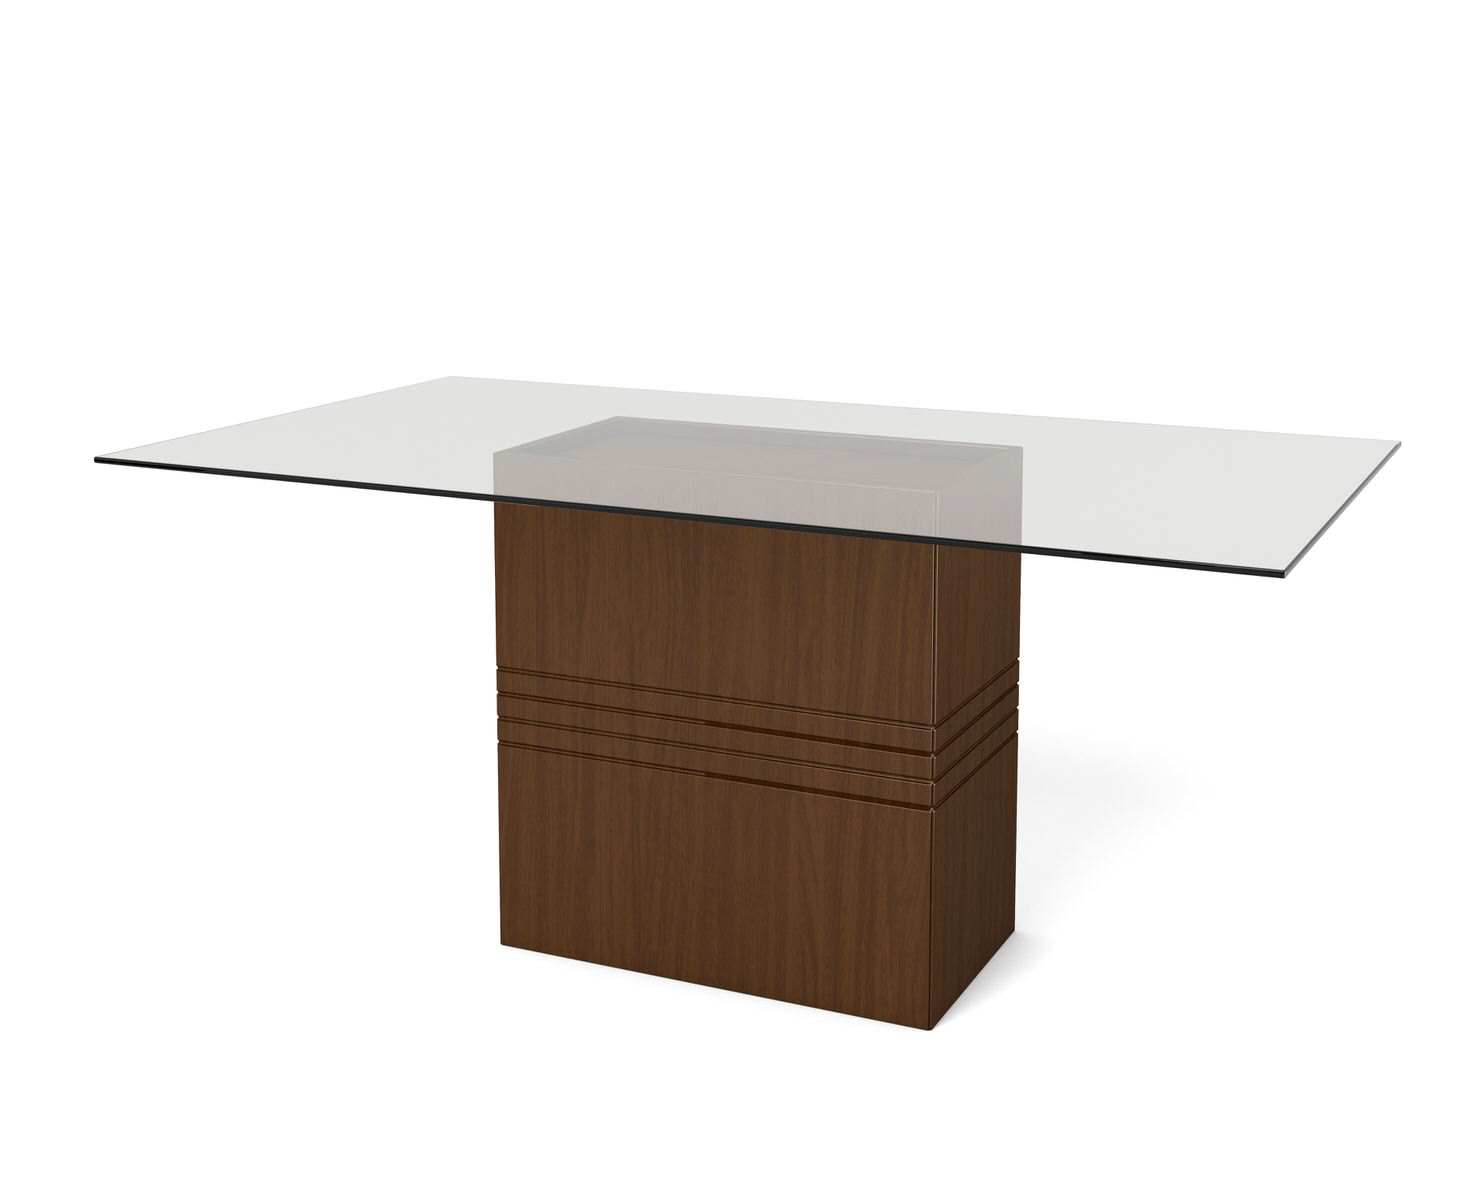 Perry Nut Brown 1 6 70 87 Inch Sleek Tempered Glass Table Top